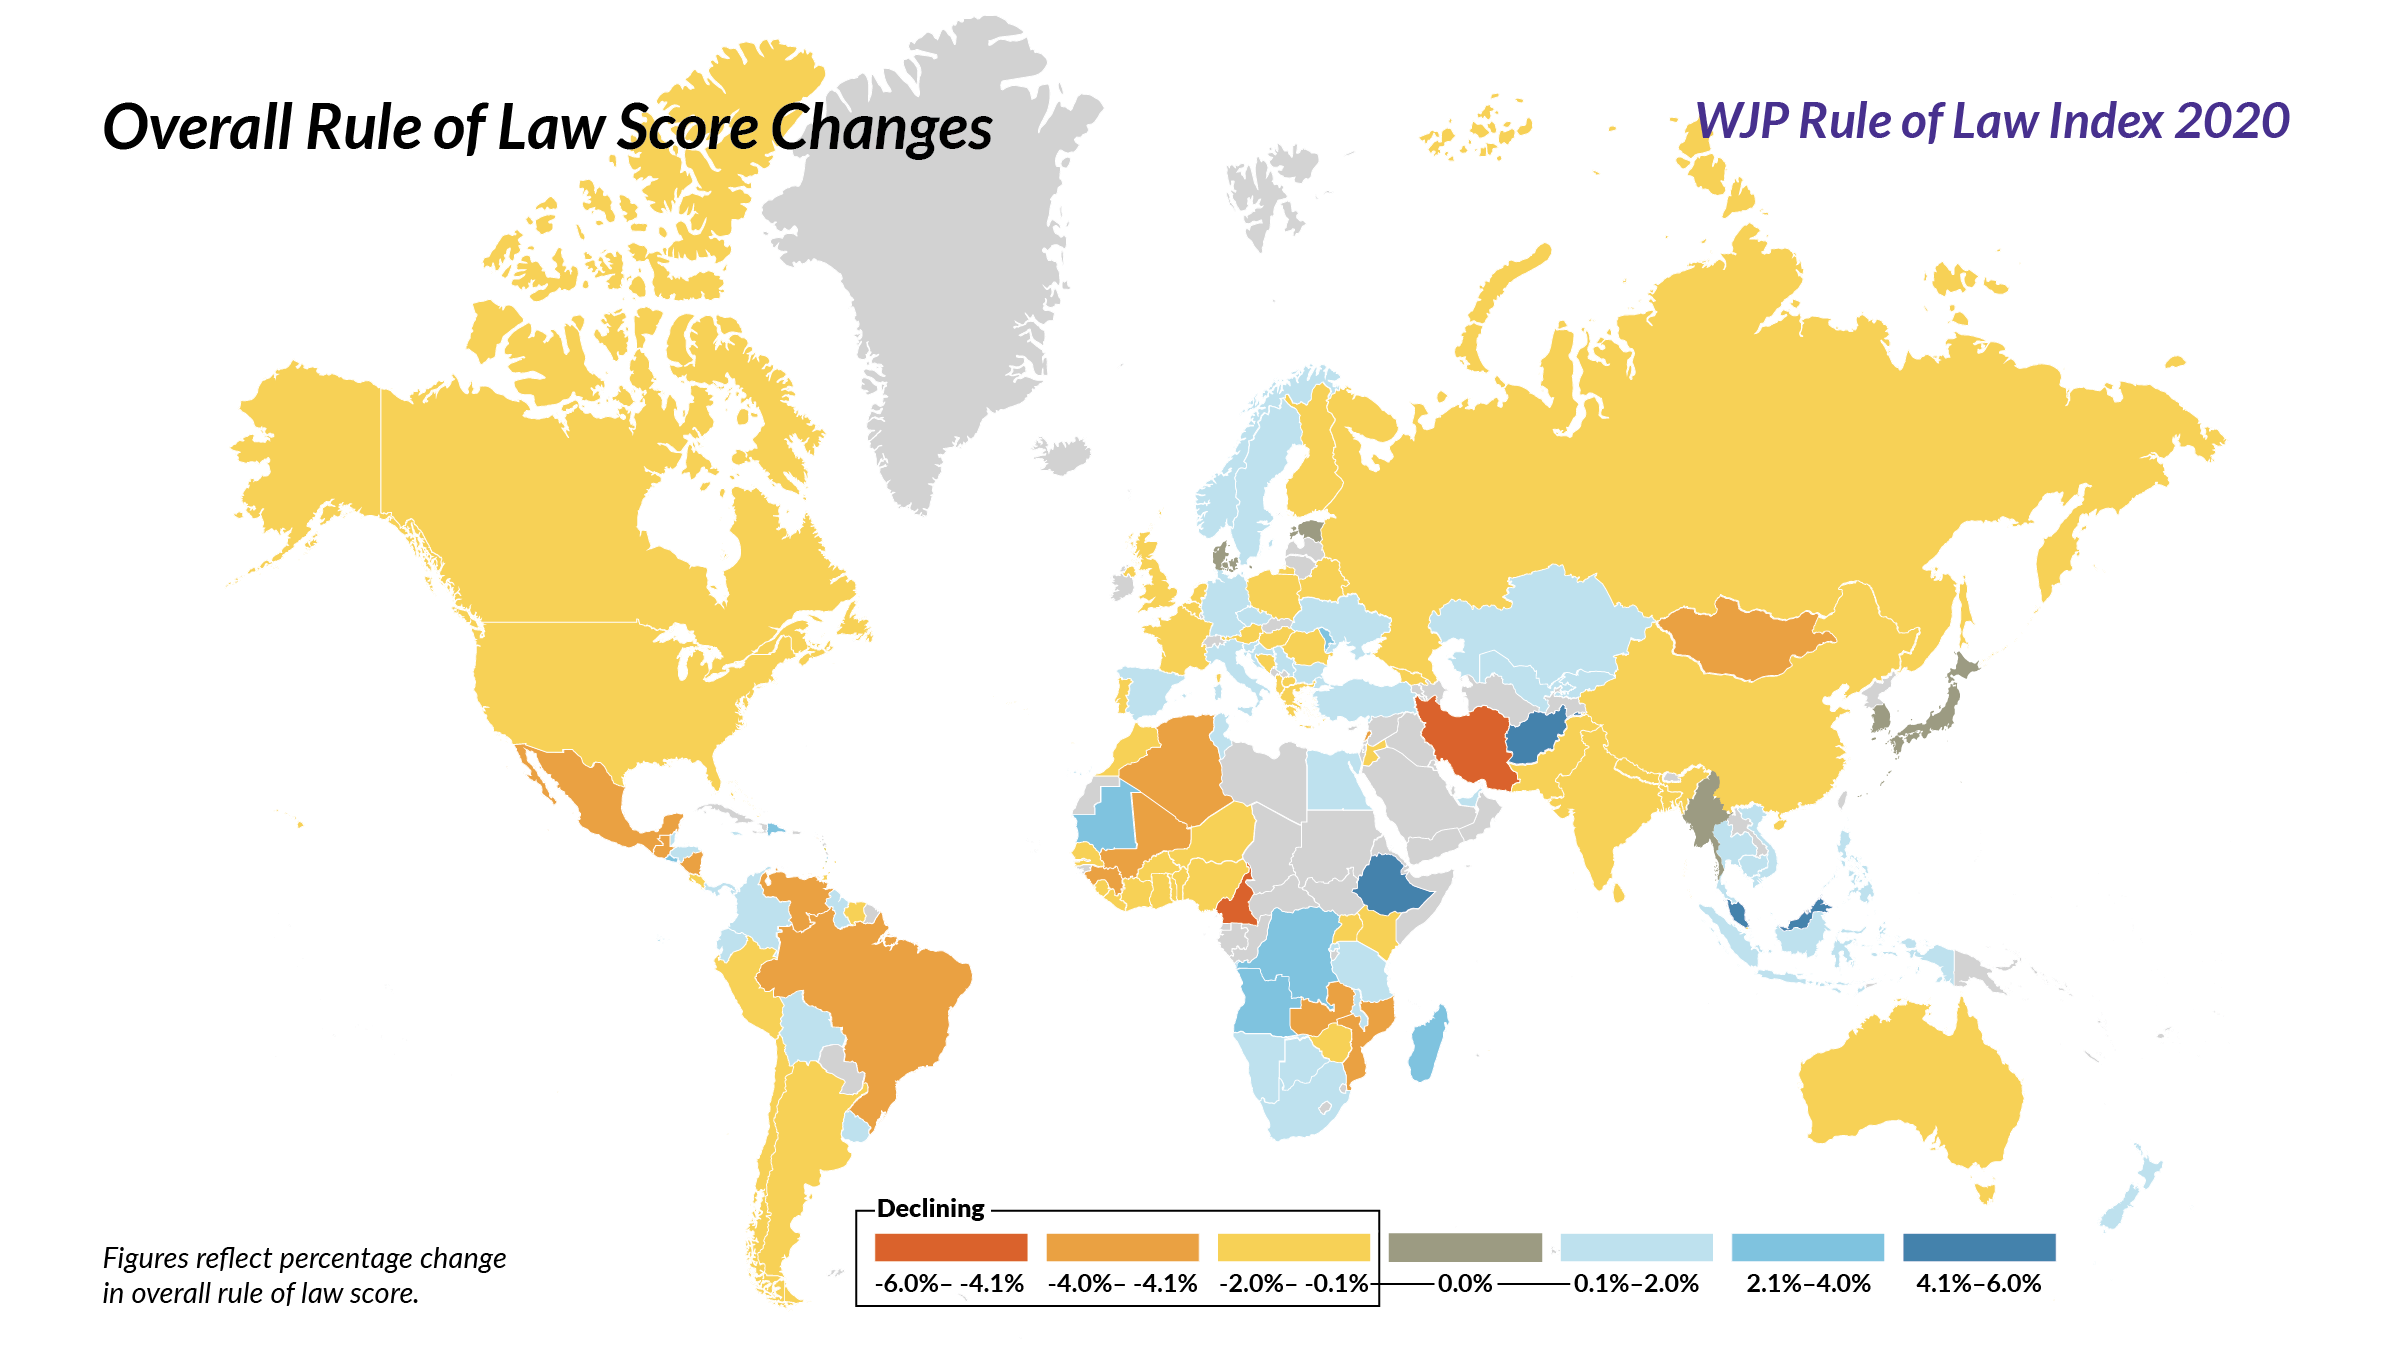 2020 Wjp Rule Of Law Index Shows Sustained Negative Slide Toward Weaker Rule Of Law Around The World Law Rules Index